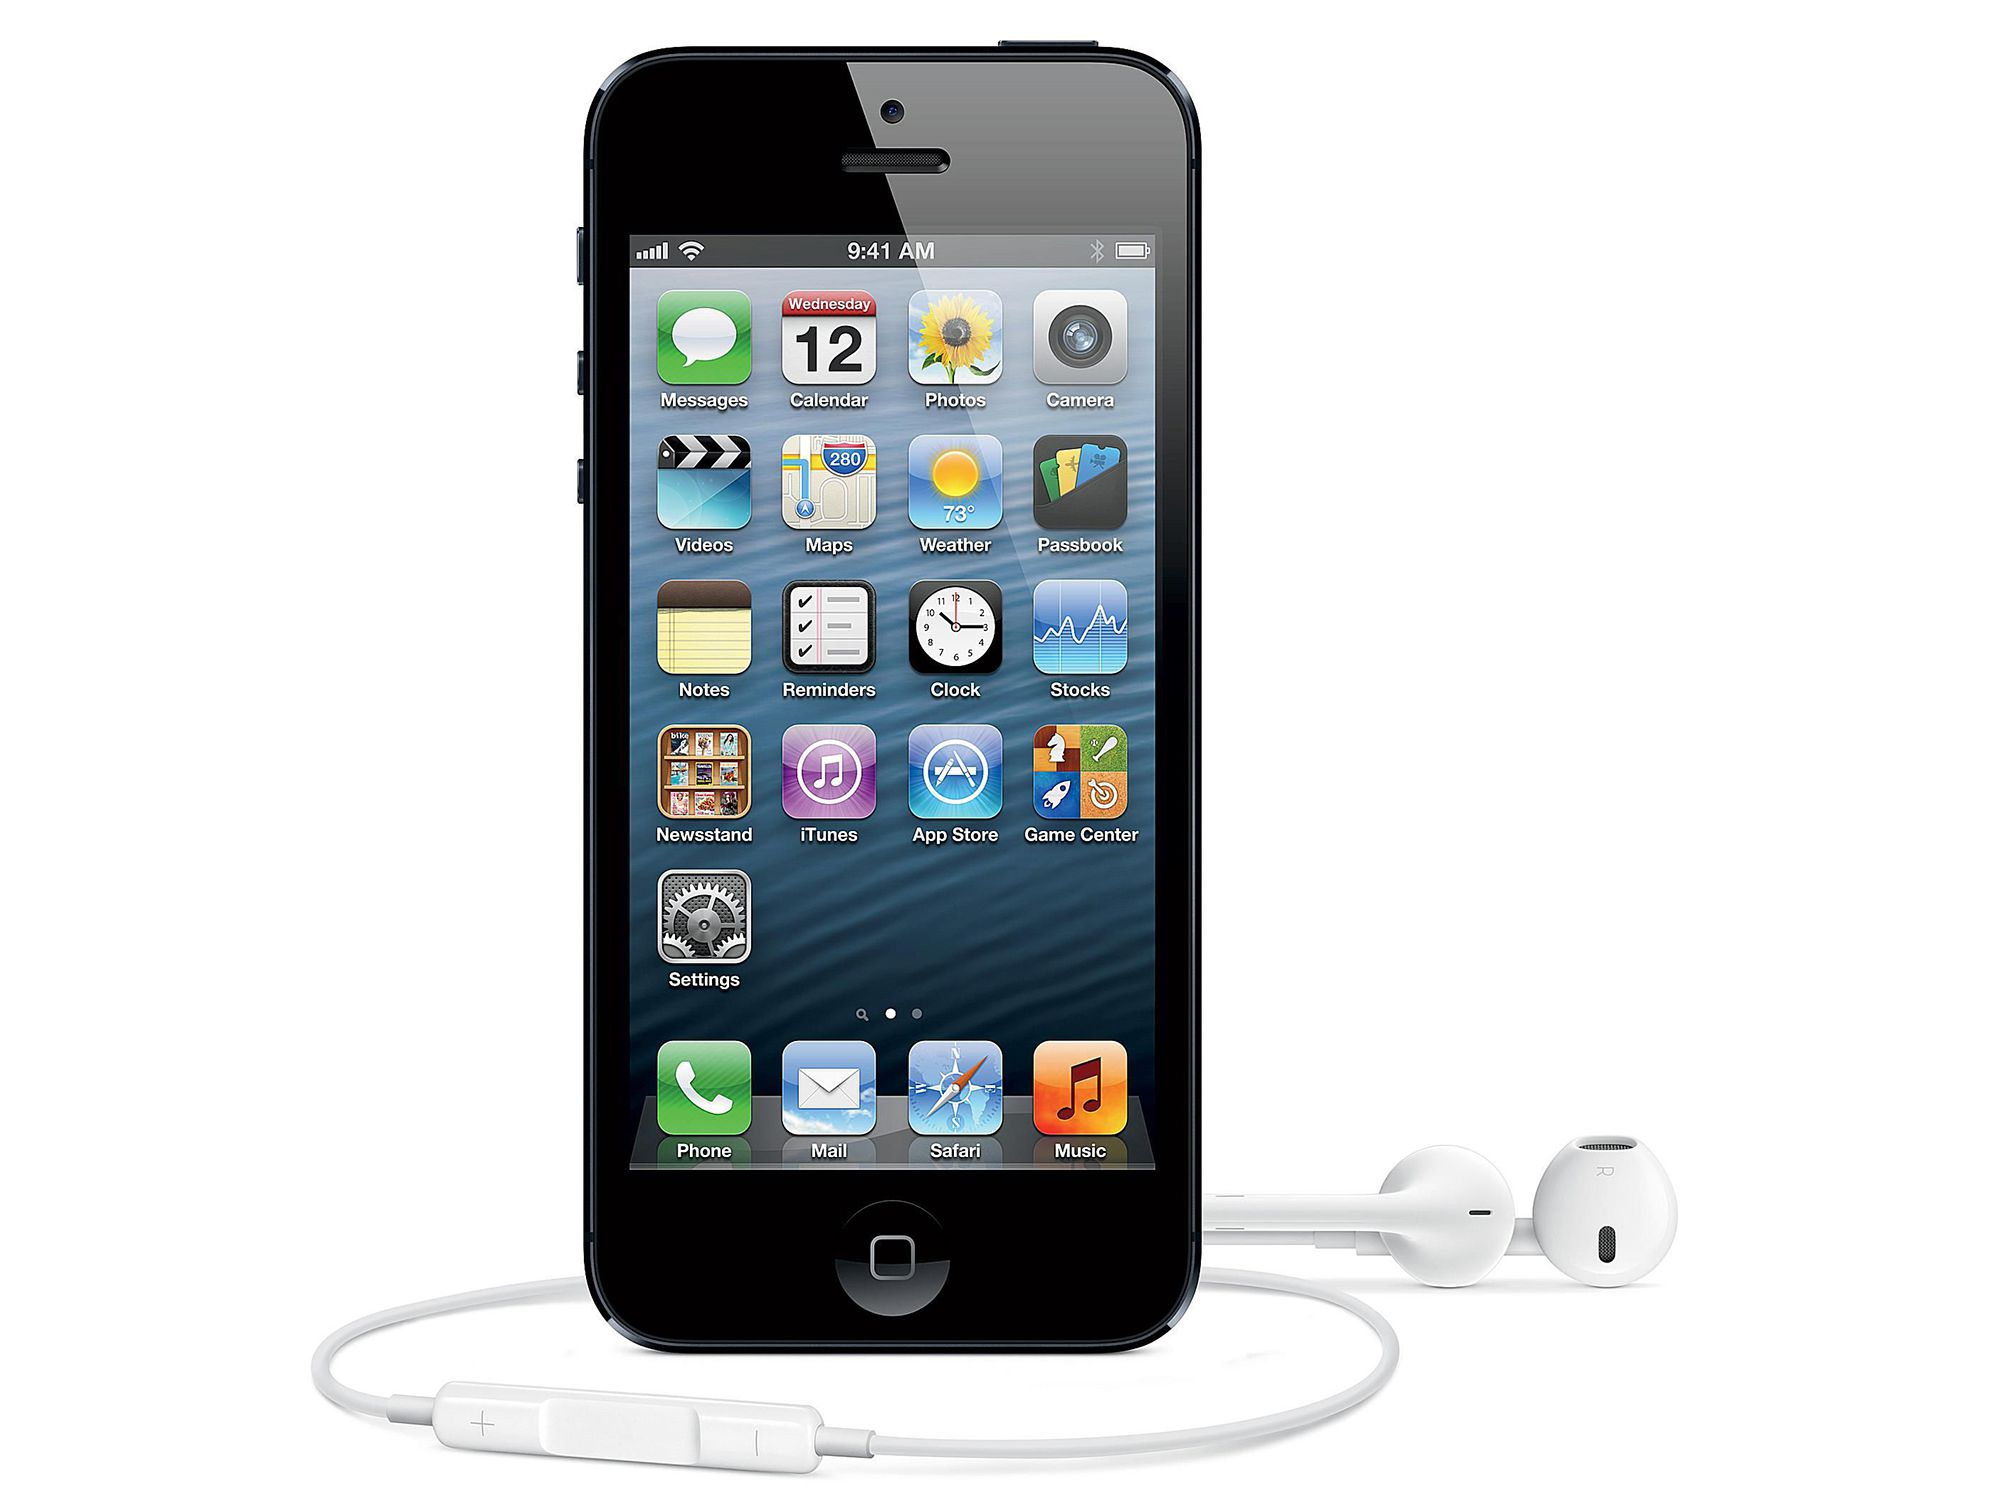 iPhone 5 Hardware and Software Features